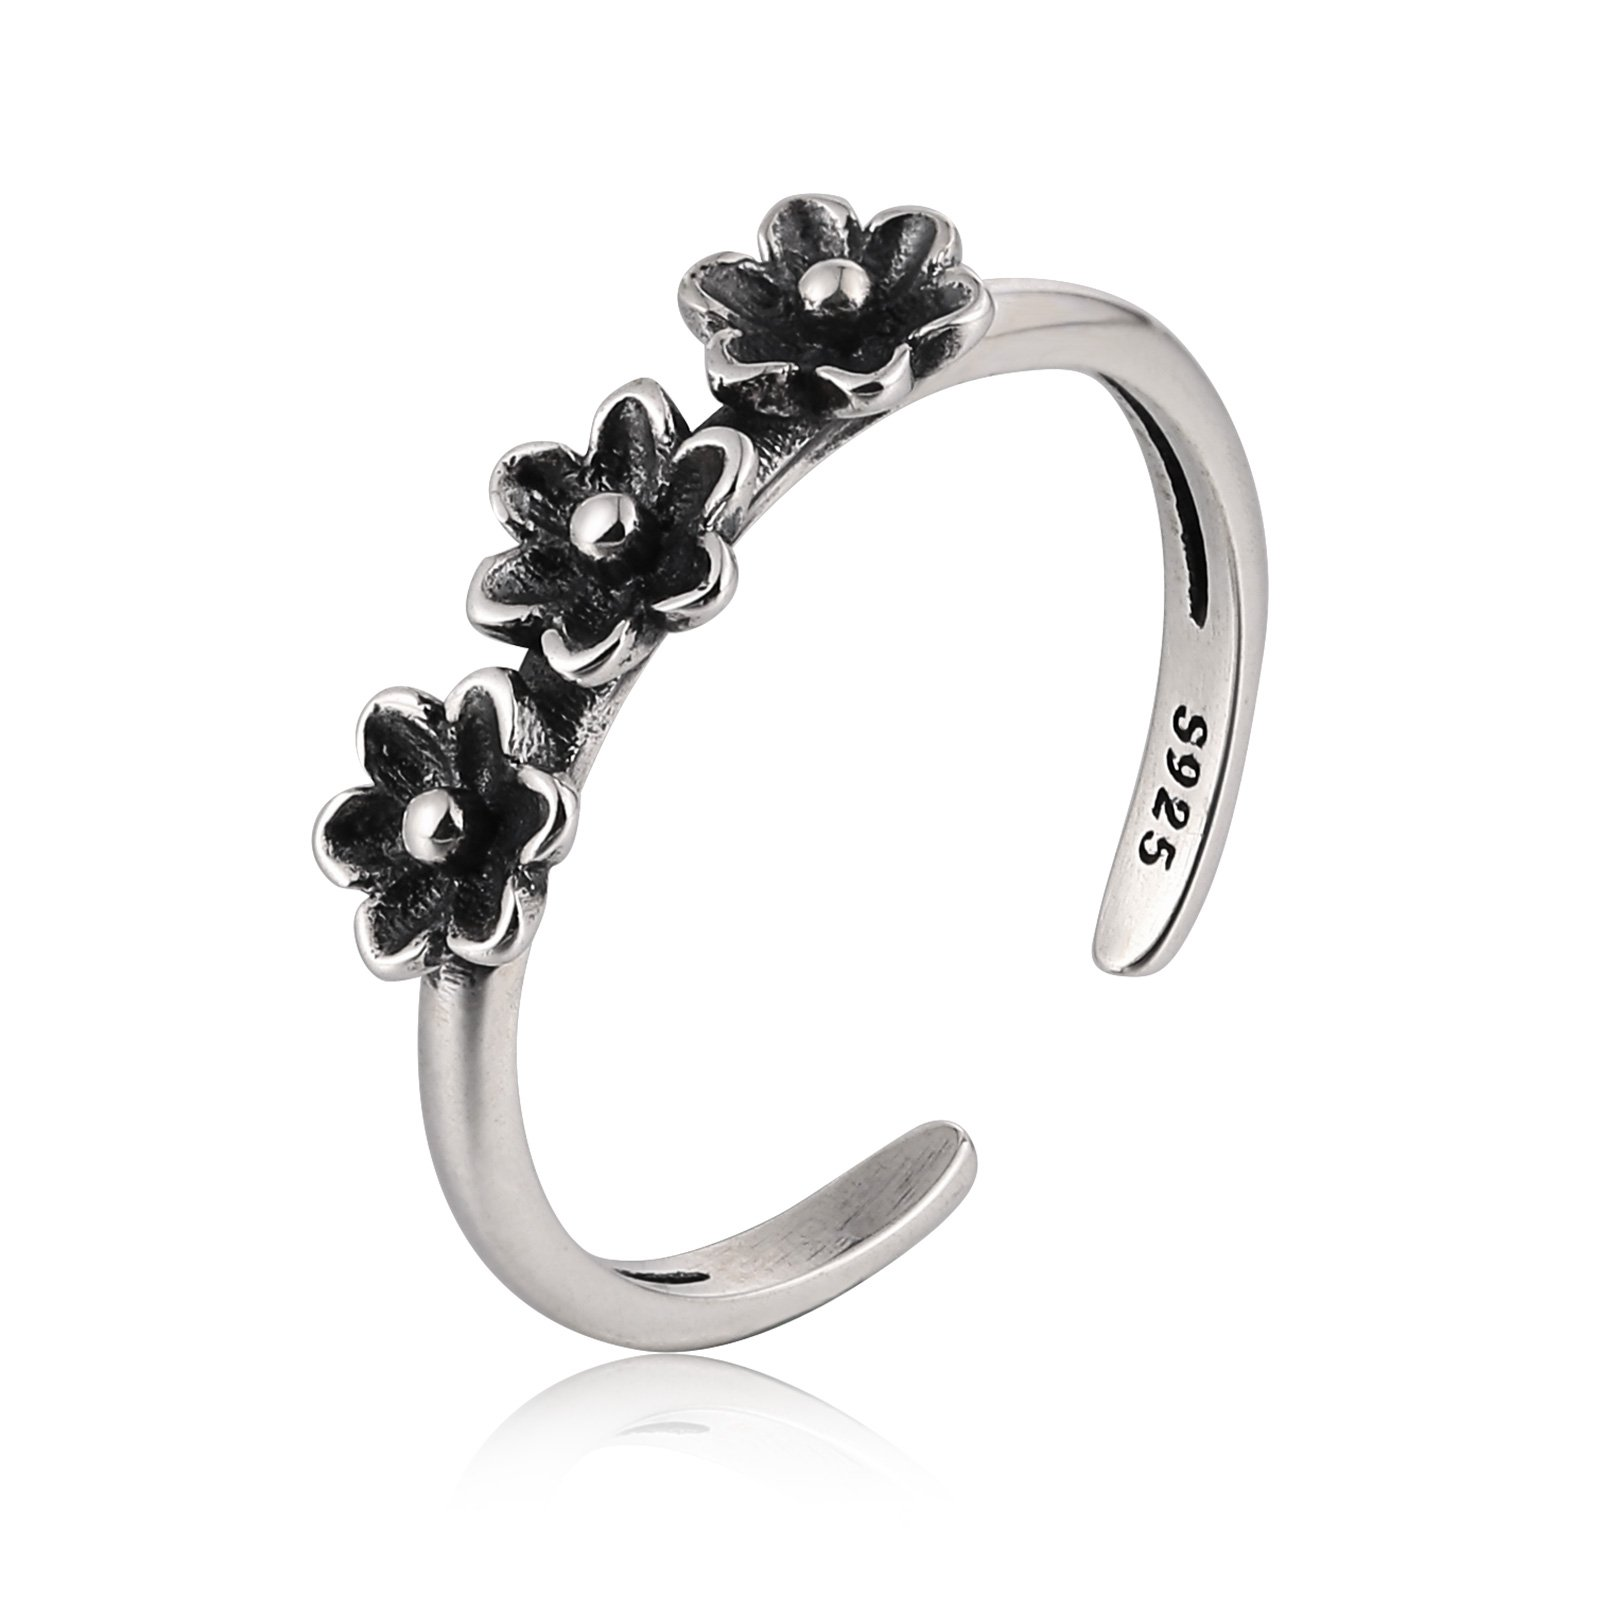 Gnzoe 925 Sterling Silver Daisy Flower Toe Ring Bands Foot Jewelry Adjustable Diameter 1.8CM